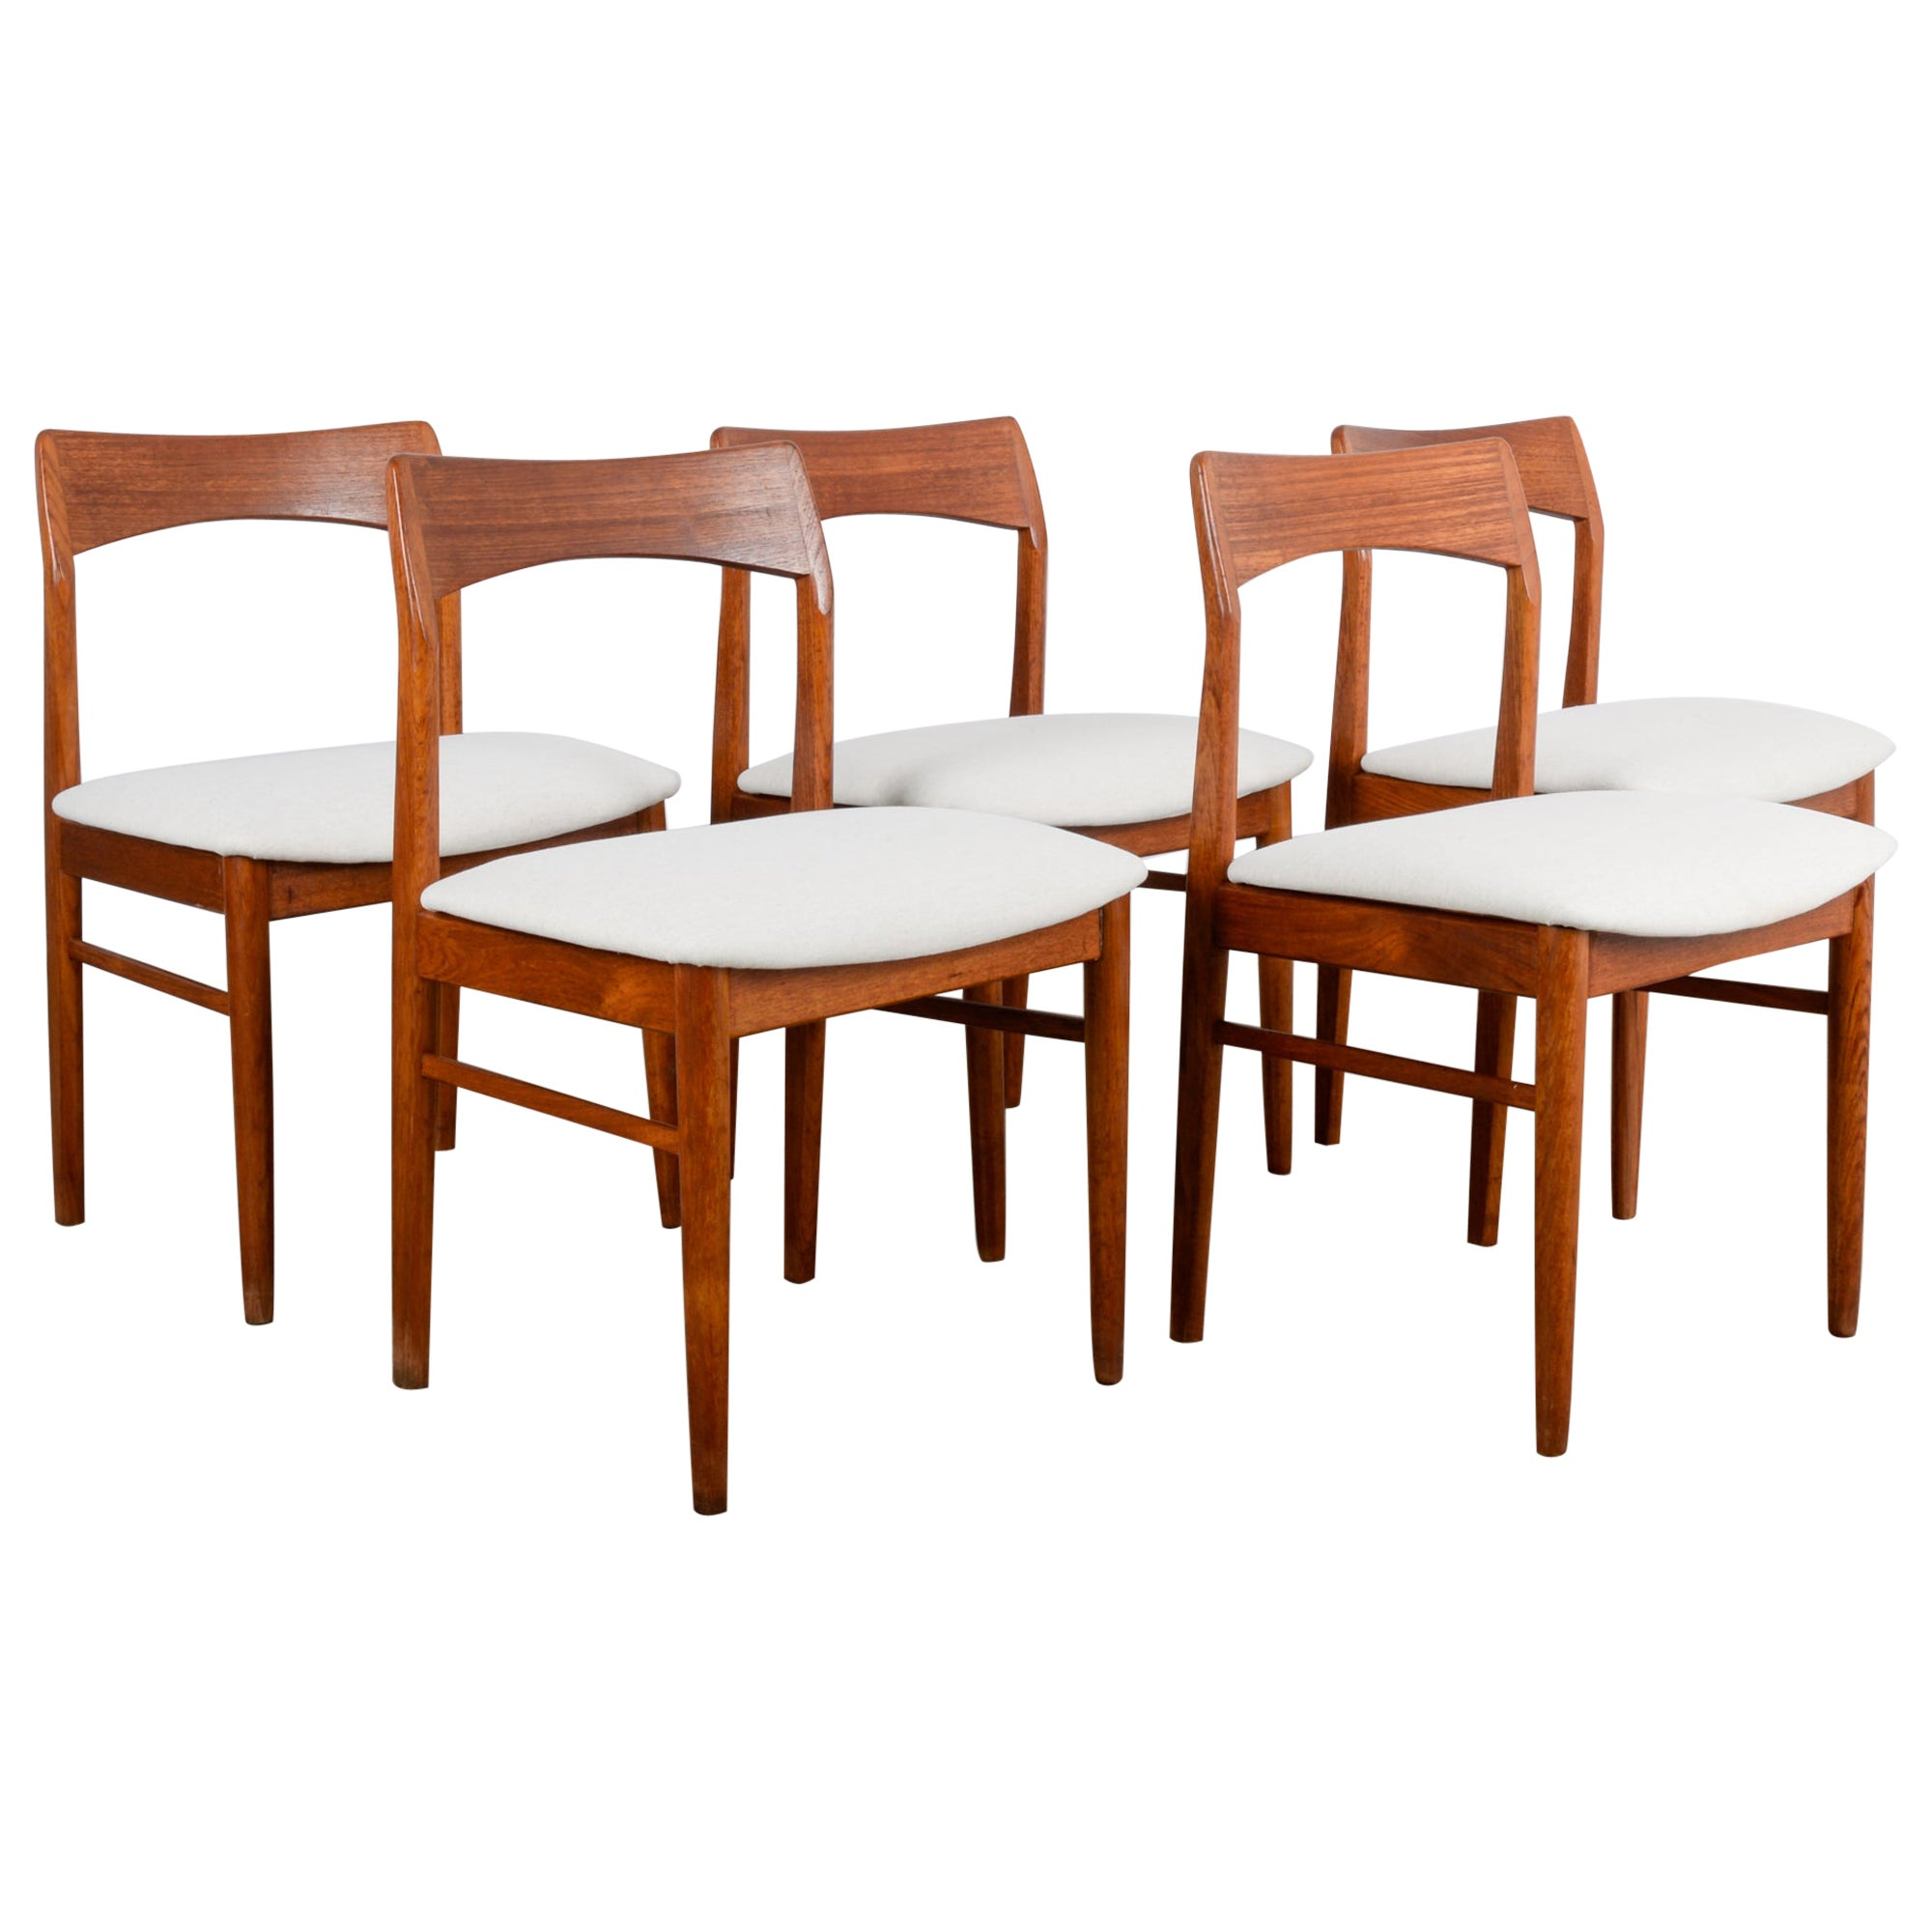 1960s Danish Teak Dining Chairs with Upholstered Seat, Set of Five